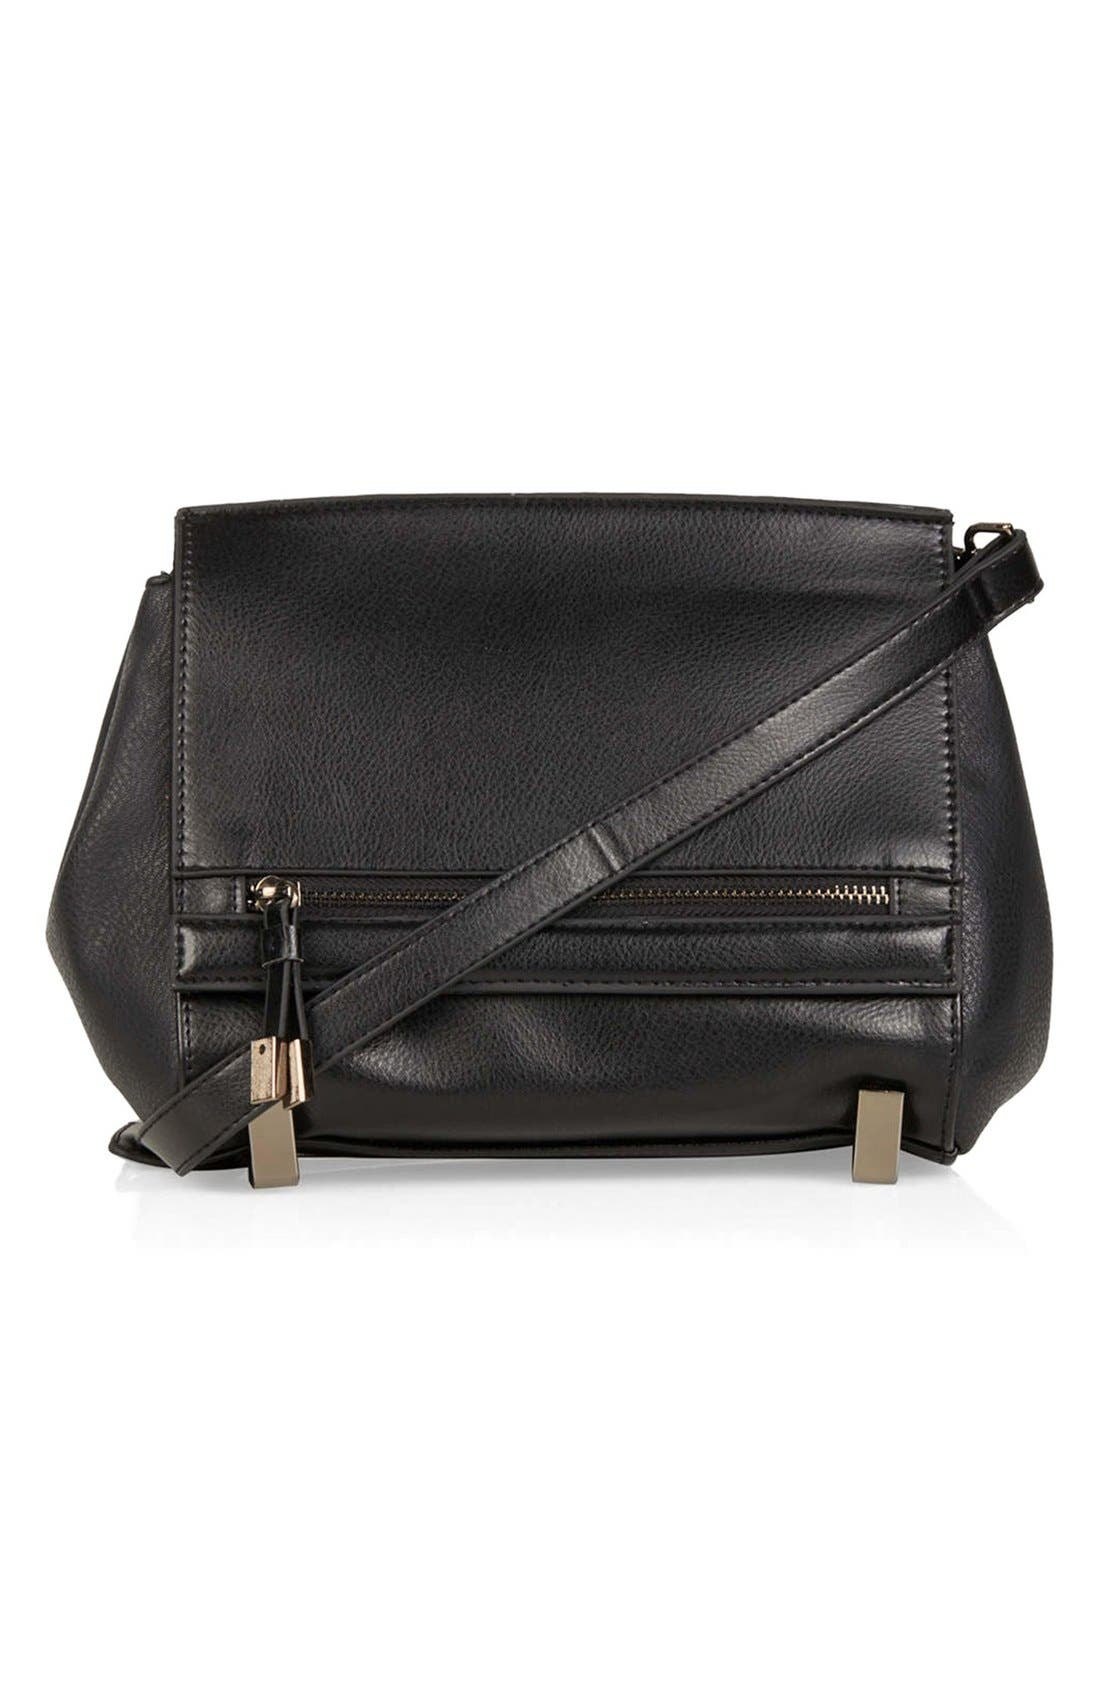 Alternate Image 1 Selected - Topshop Crossbody Bag